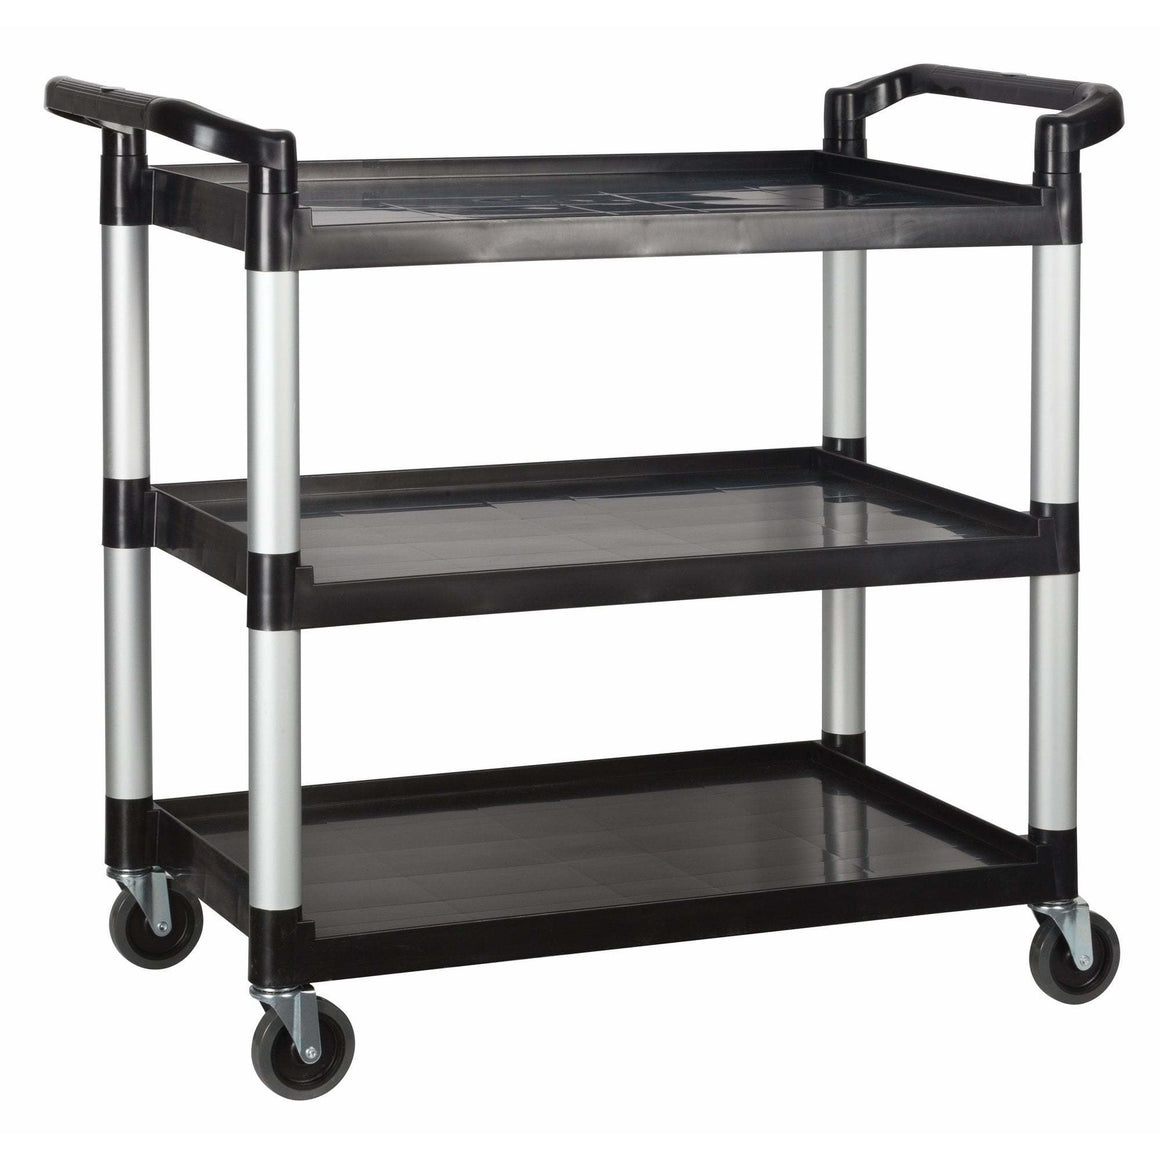 "Winco - UC-3019K - Plastic Utility Cart, 40-3/4""L x 19-1/2""W x 37-3/8""H, 3 Tier, Black - Bussing - Maltese & Co New and Used  restaurant Equipment"